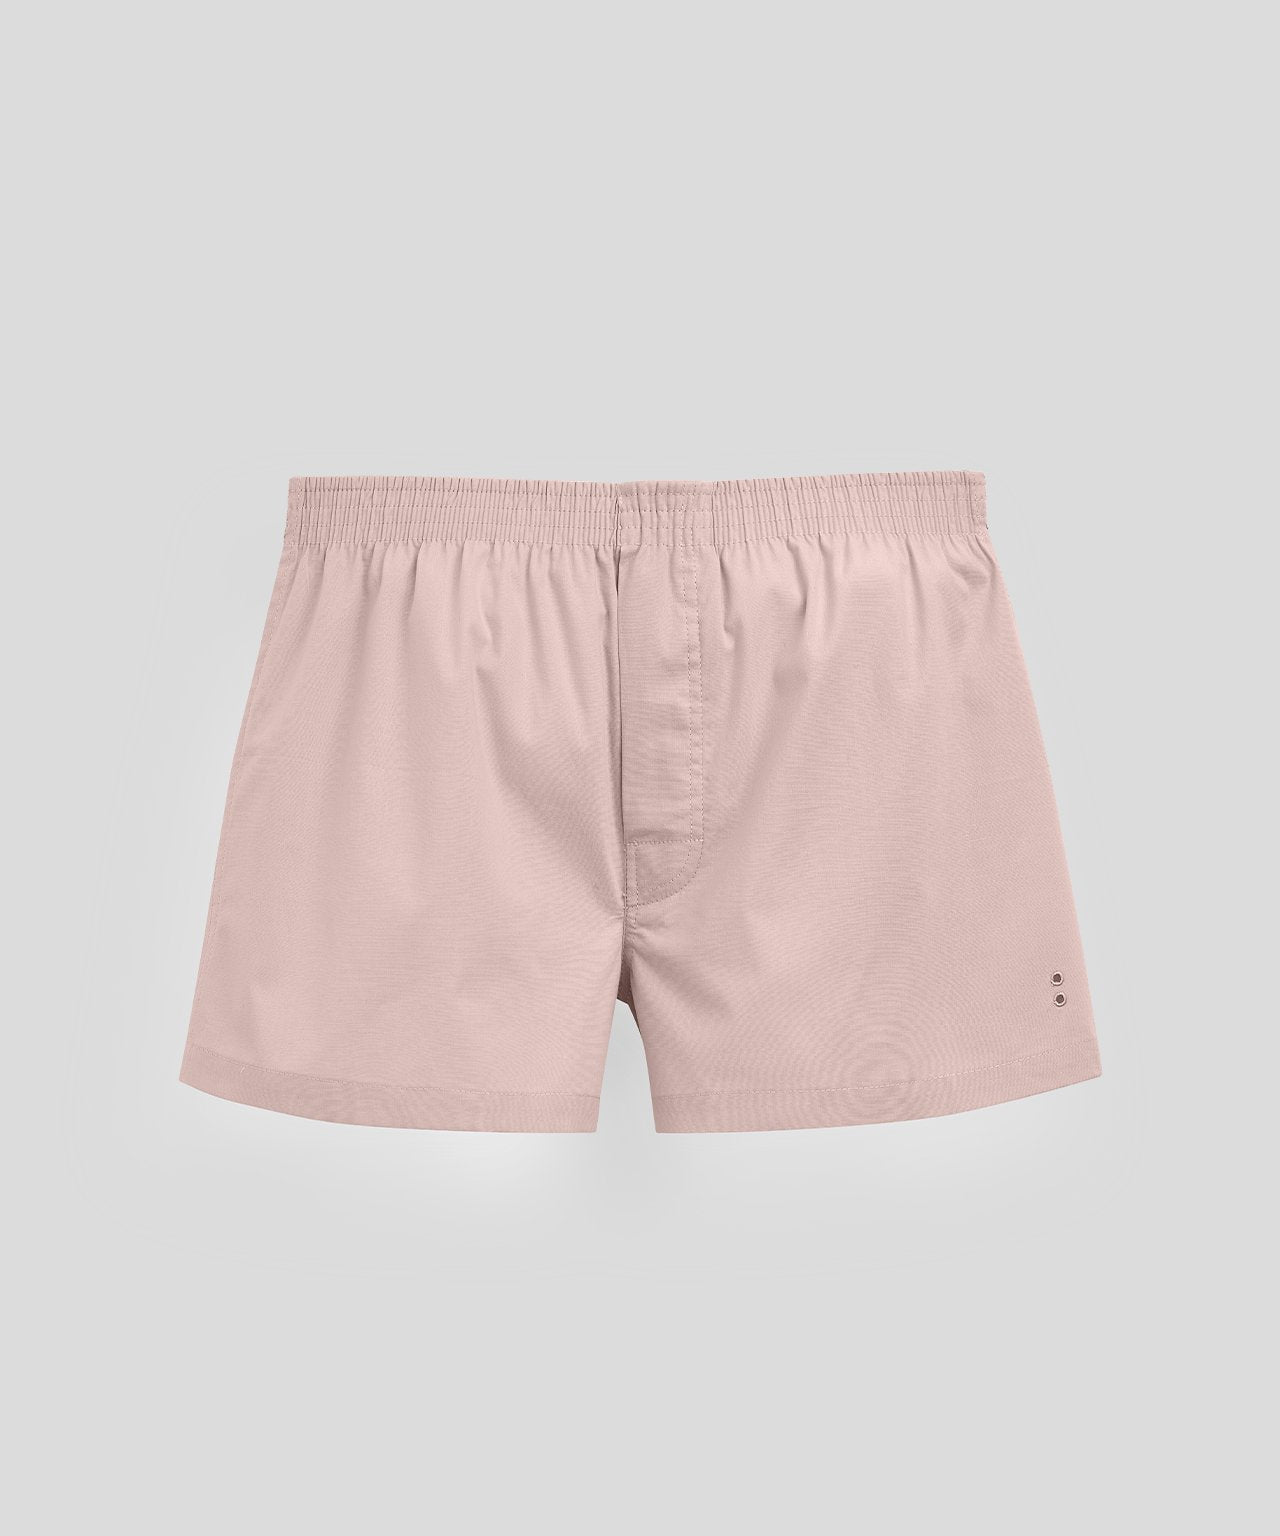 747 Boxer Shorts Kit - pink